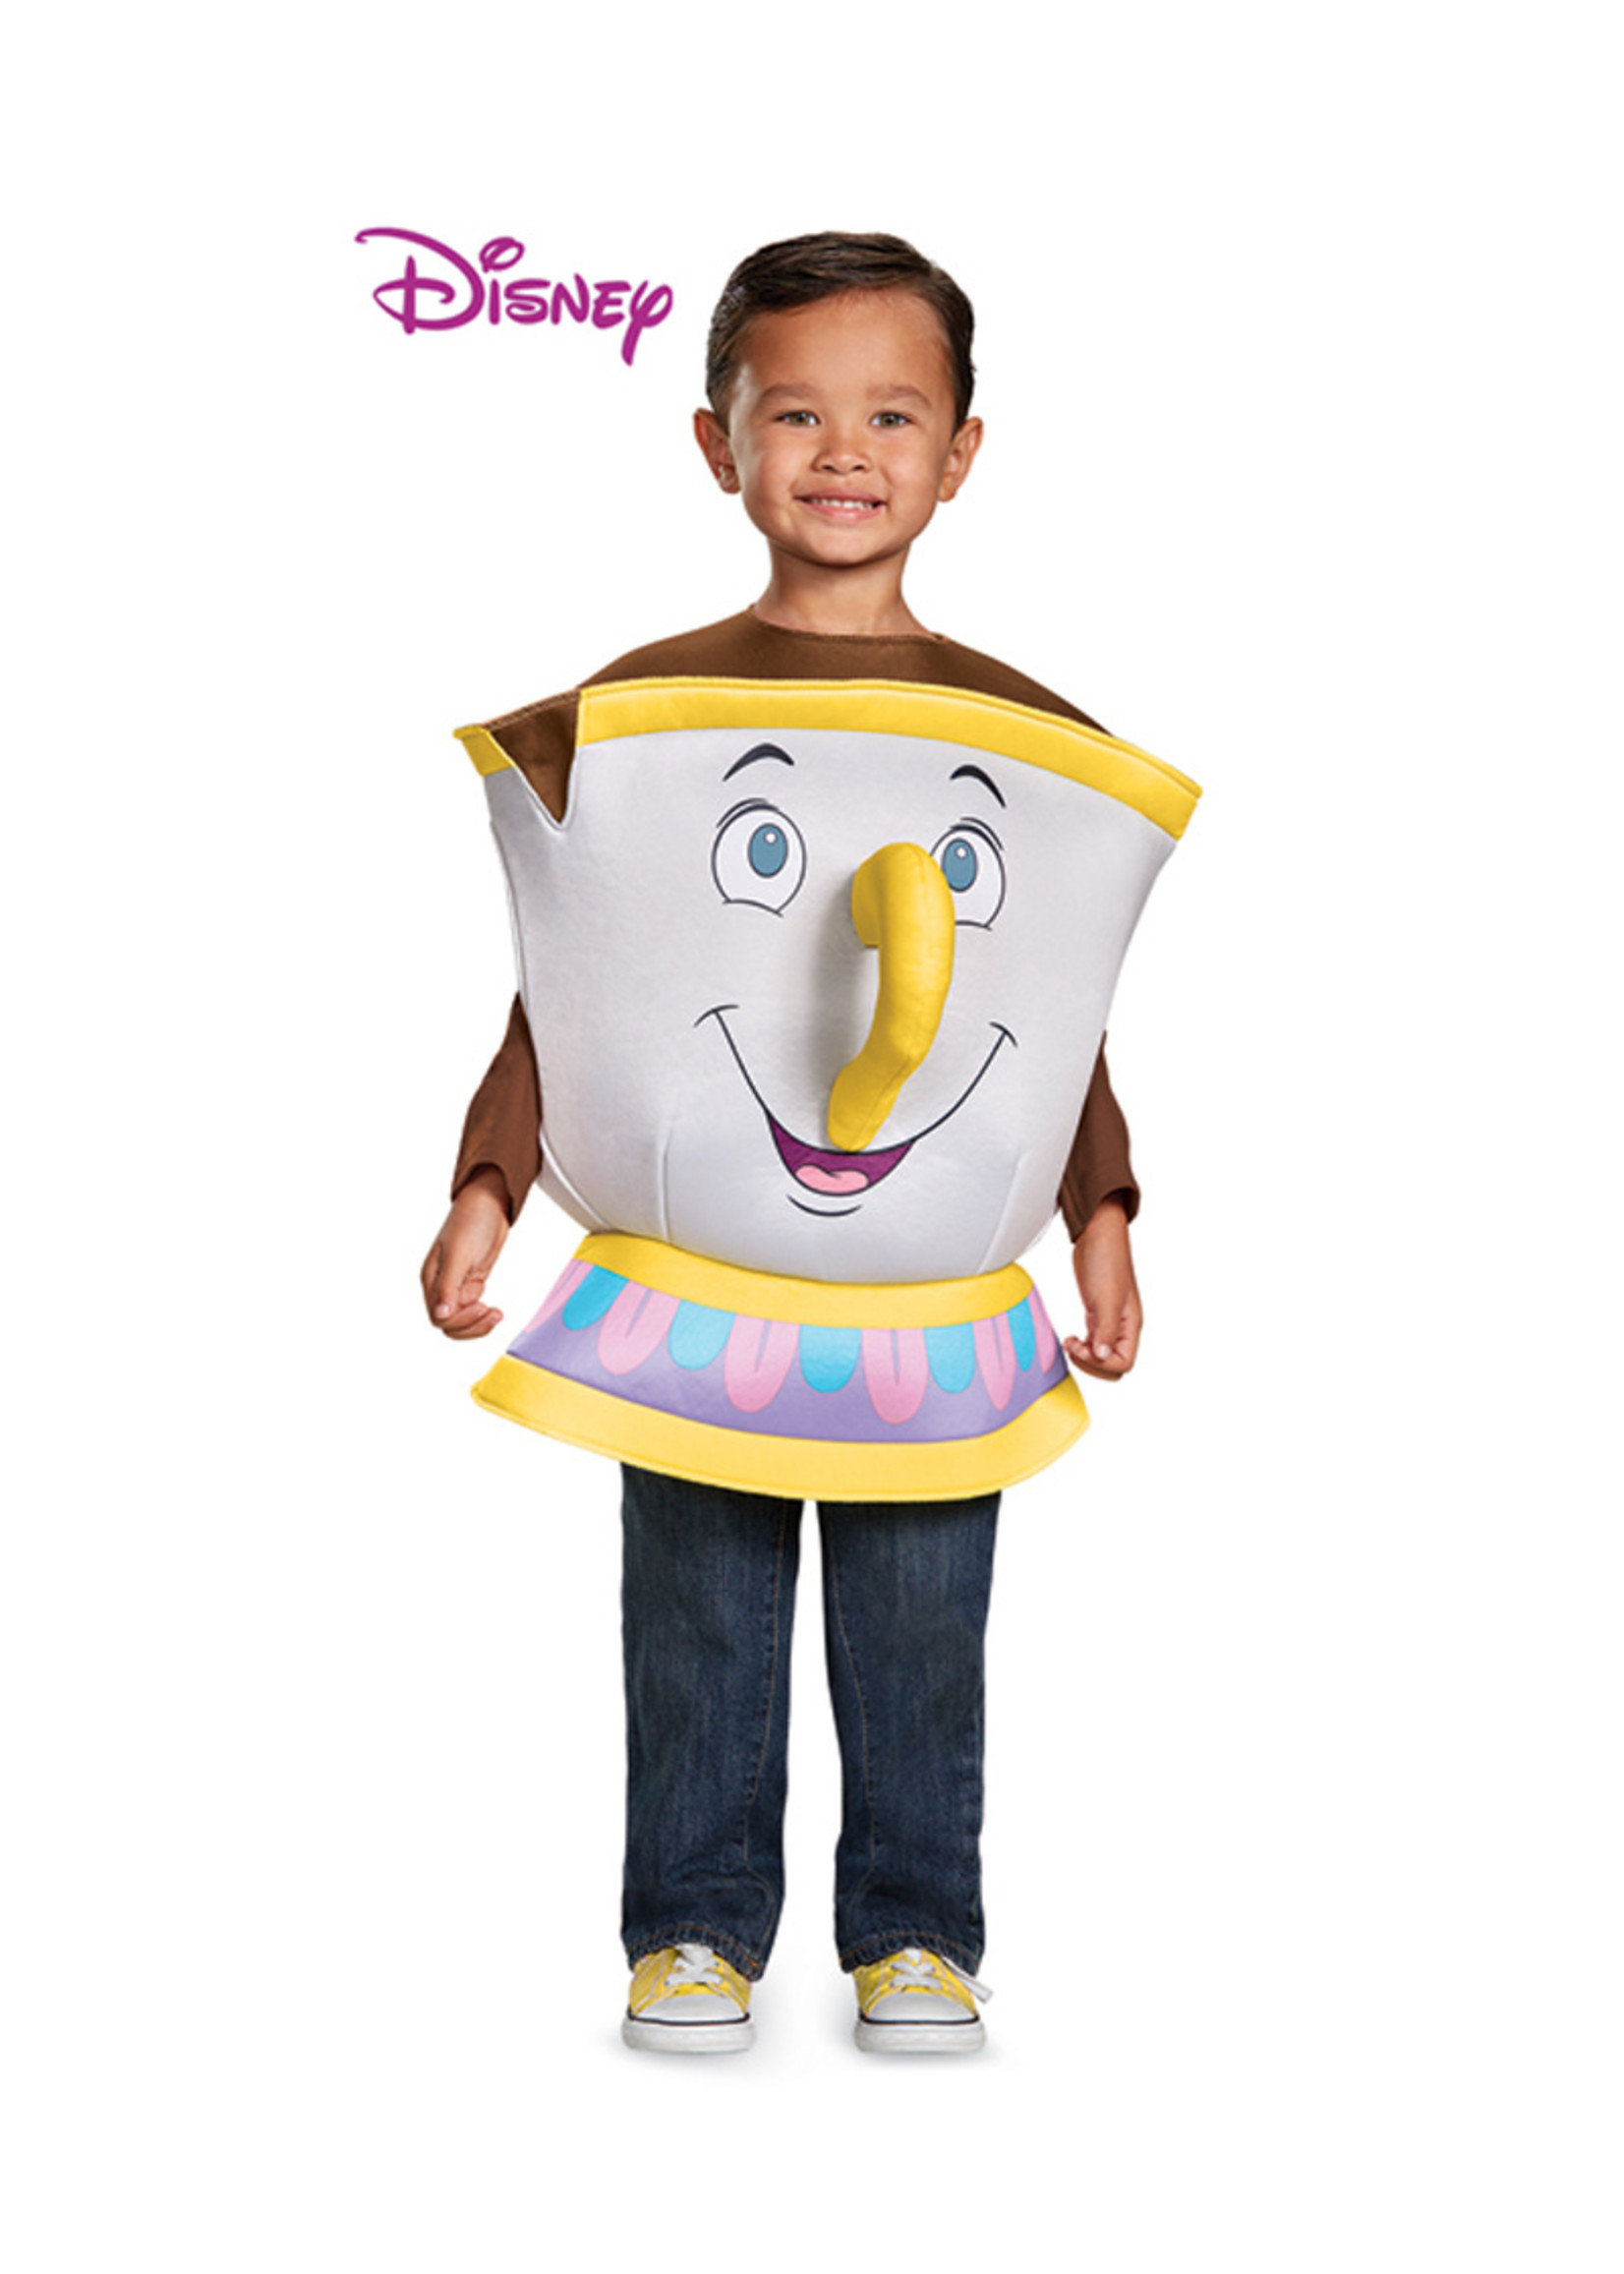 Chip - Beauty and the Beast Costume - Toddler